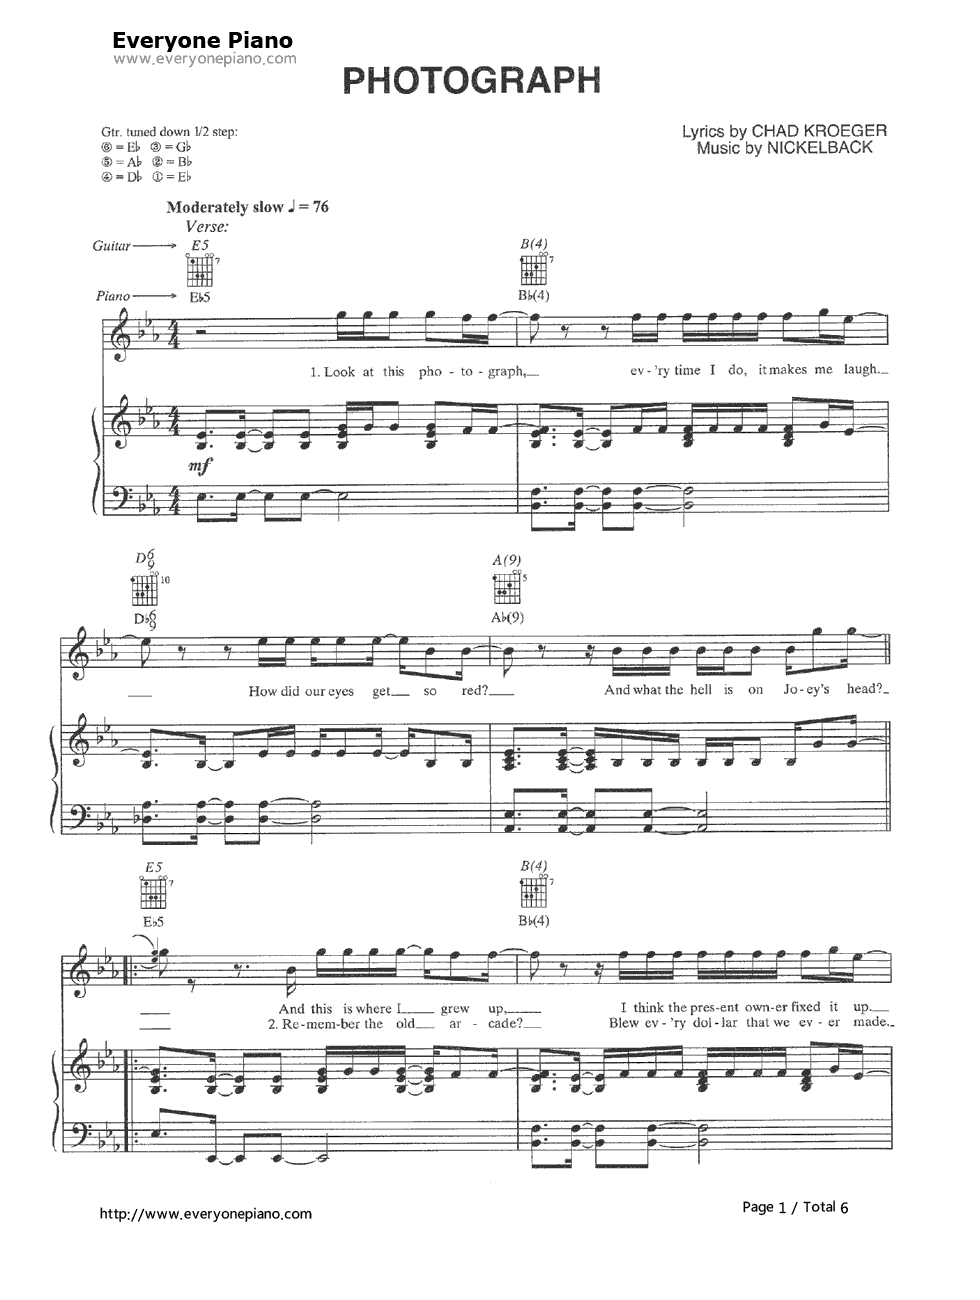 Photograph-Nickelback Stave Preview 1-Free Piano Sheet Music u0026 Piano Chords